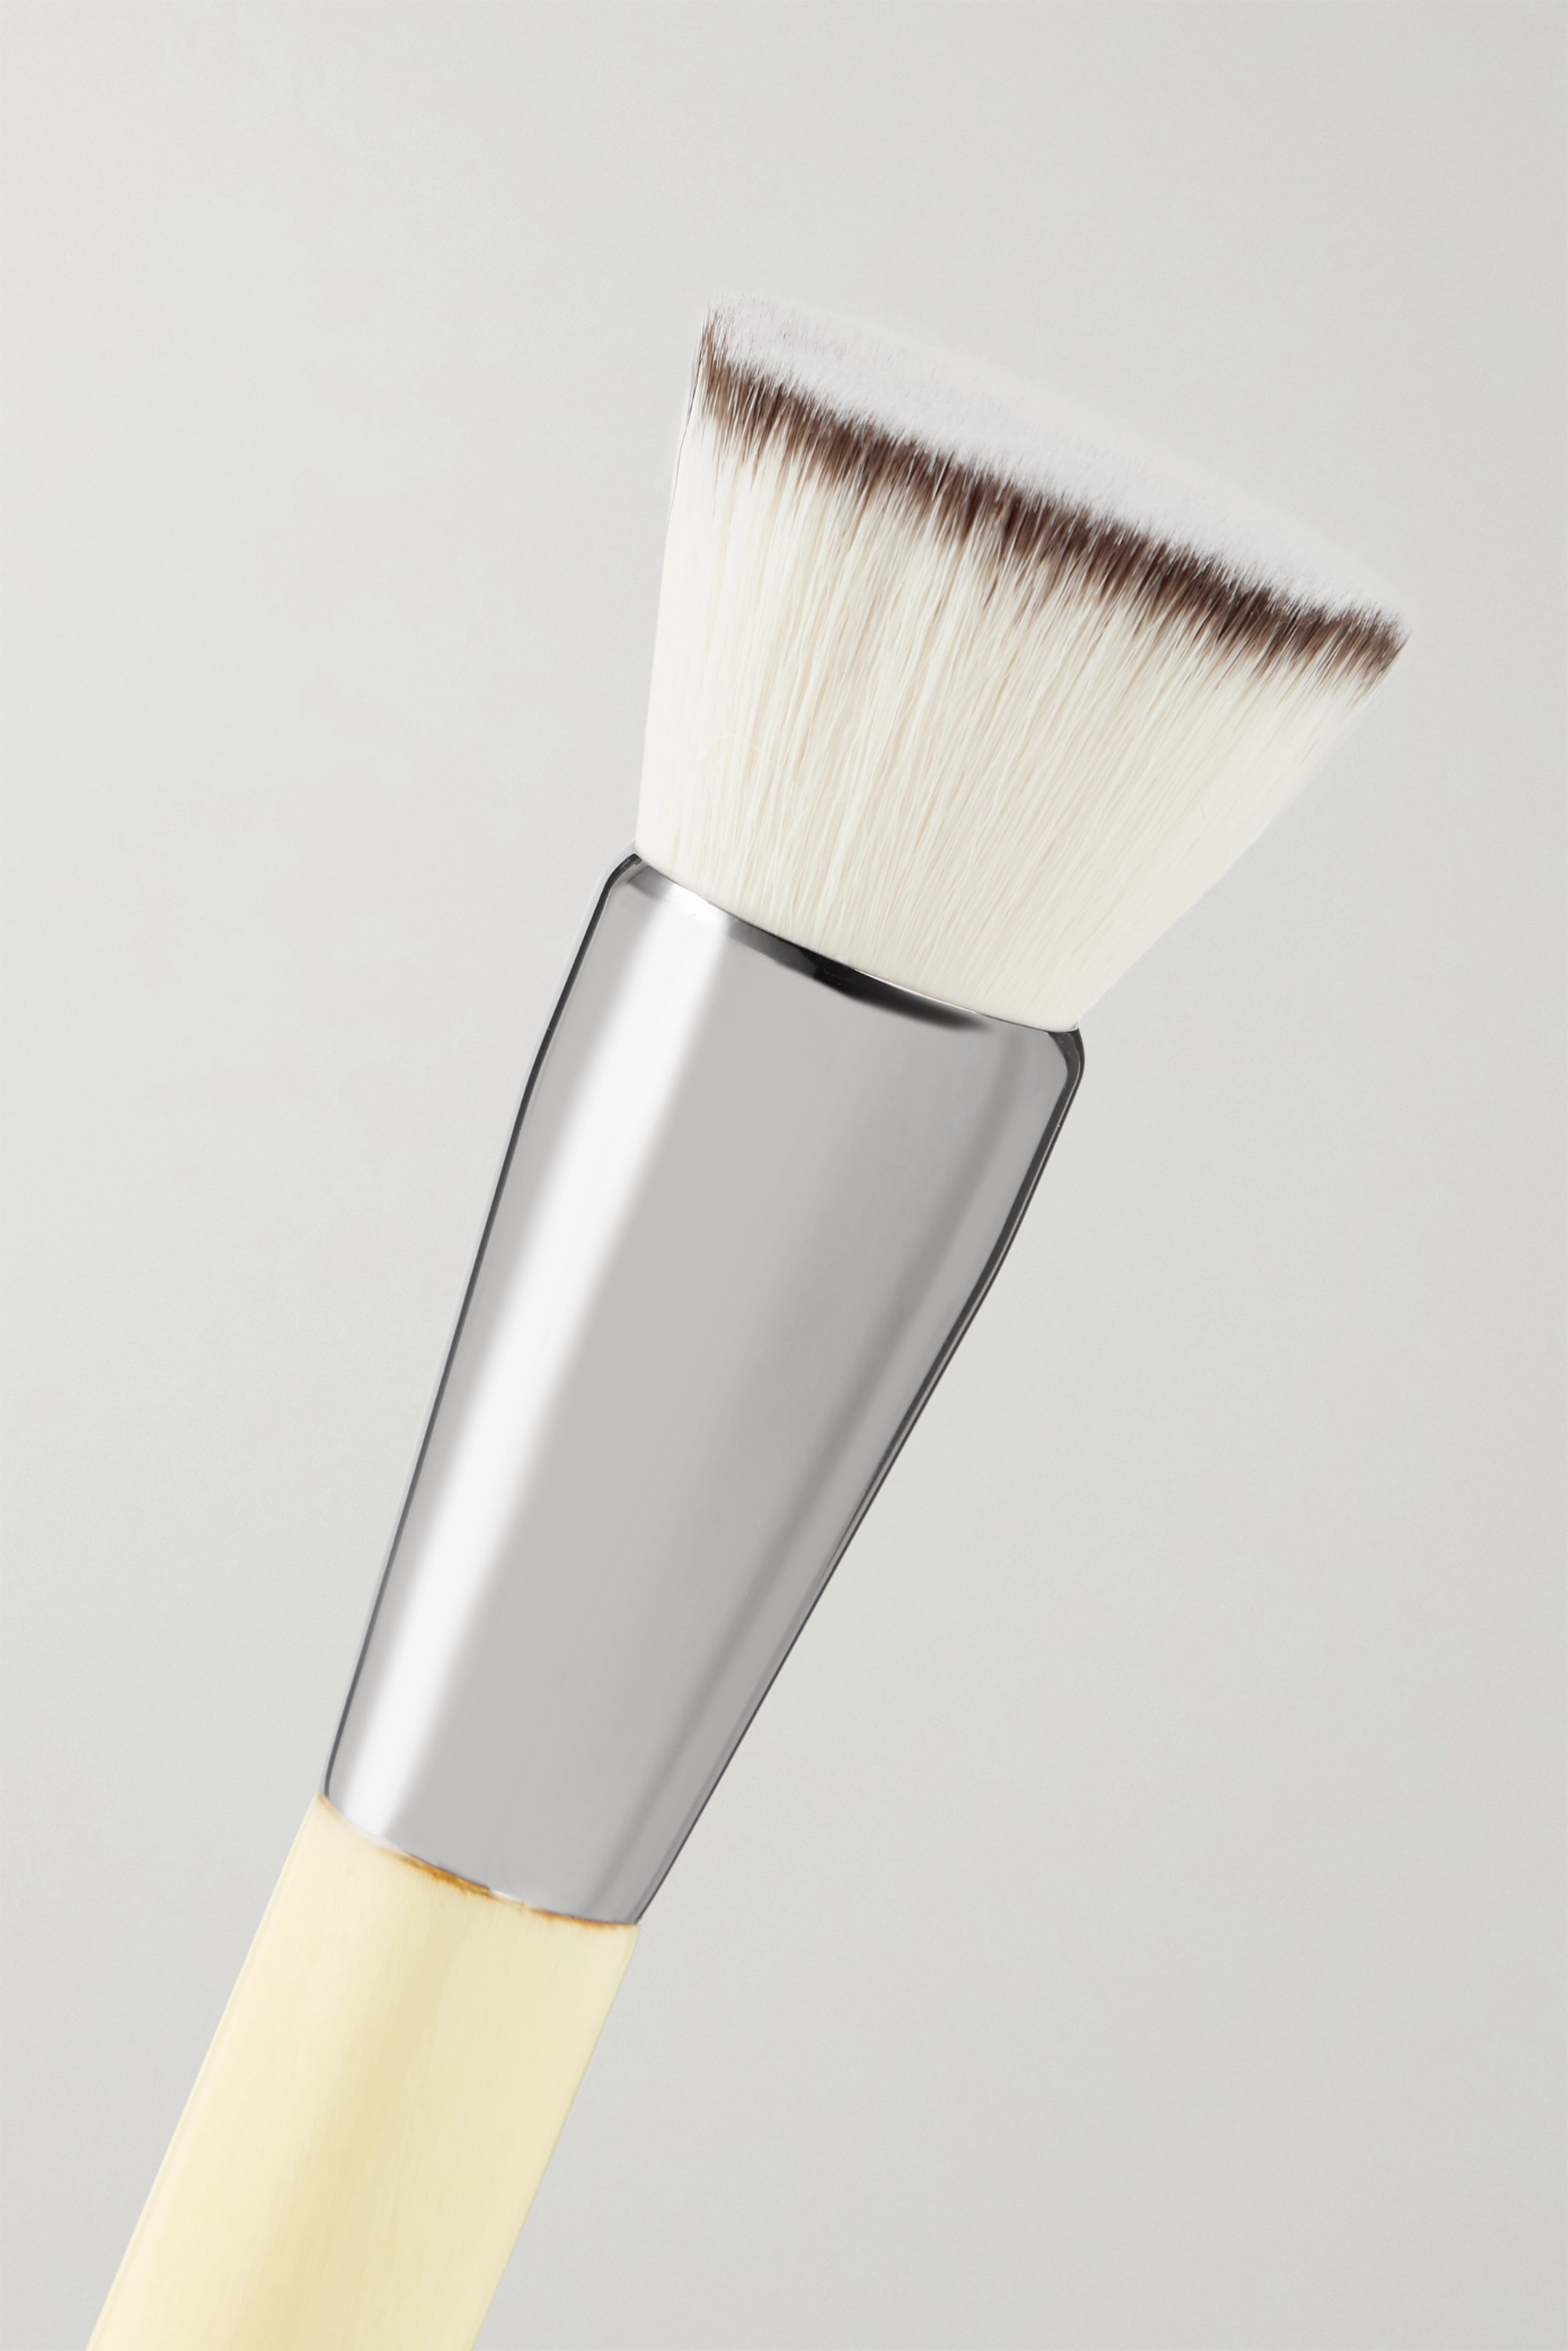 Chantecaille Pinceau poudre Buff and Blur